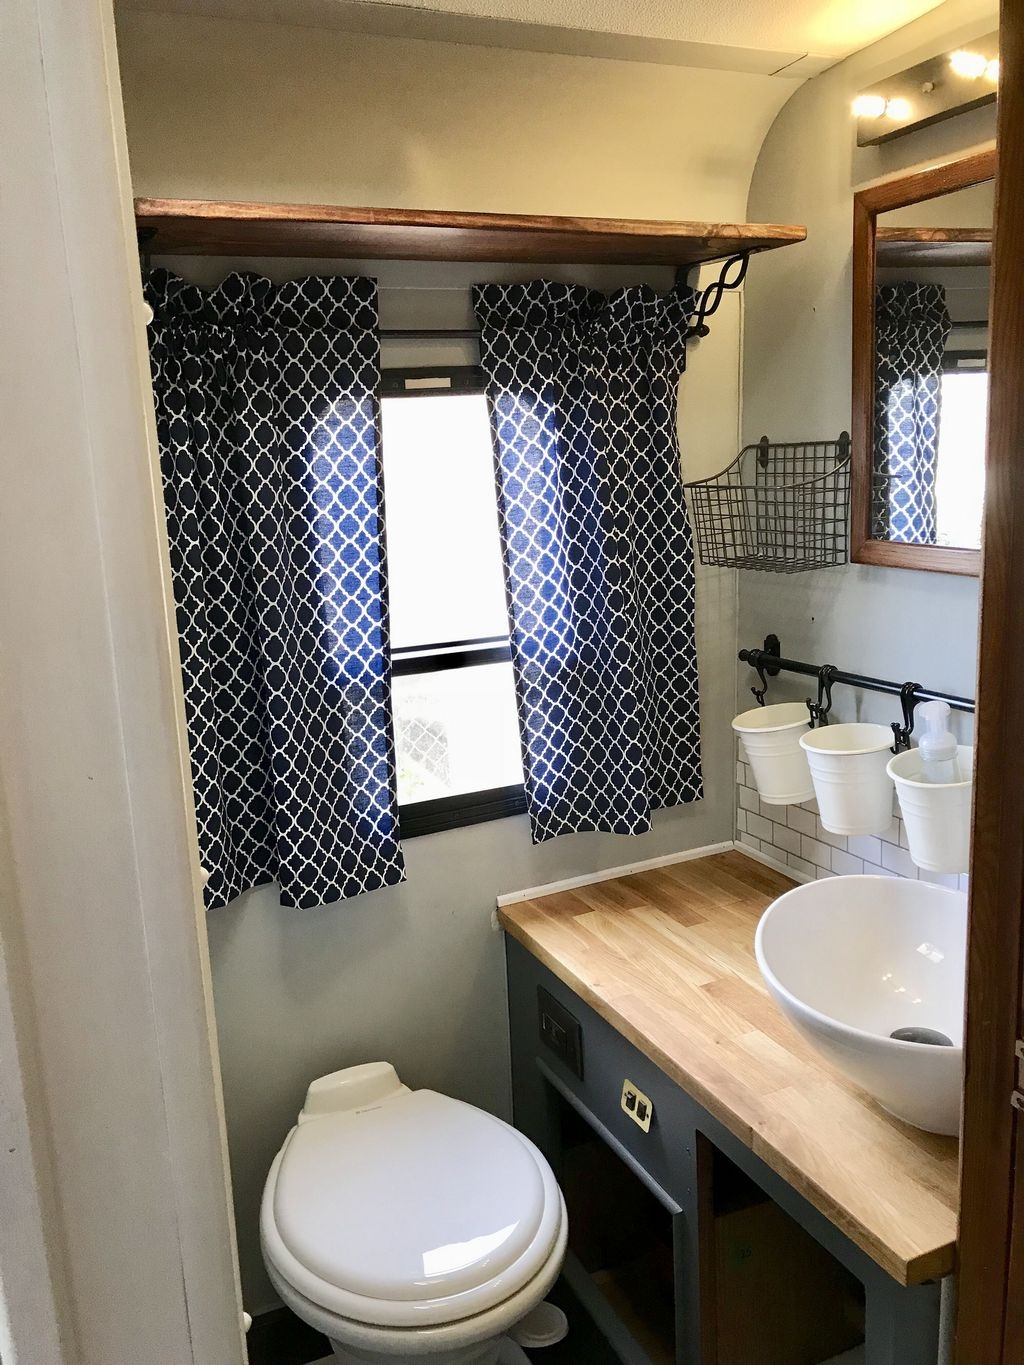 Fascinating Rv Remodel Ideas For Bathroom On A Budget39